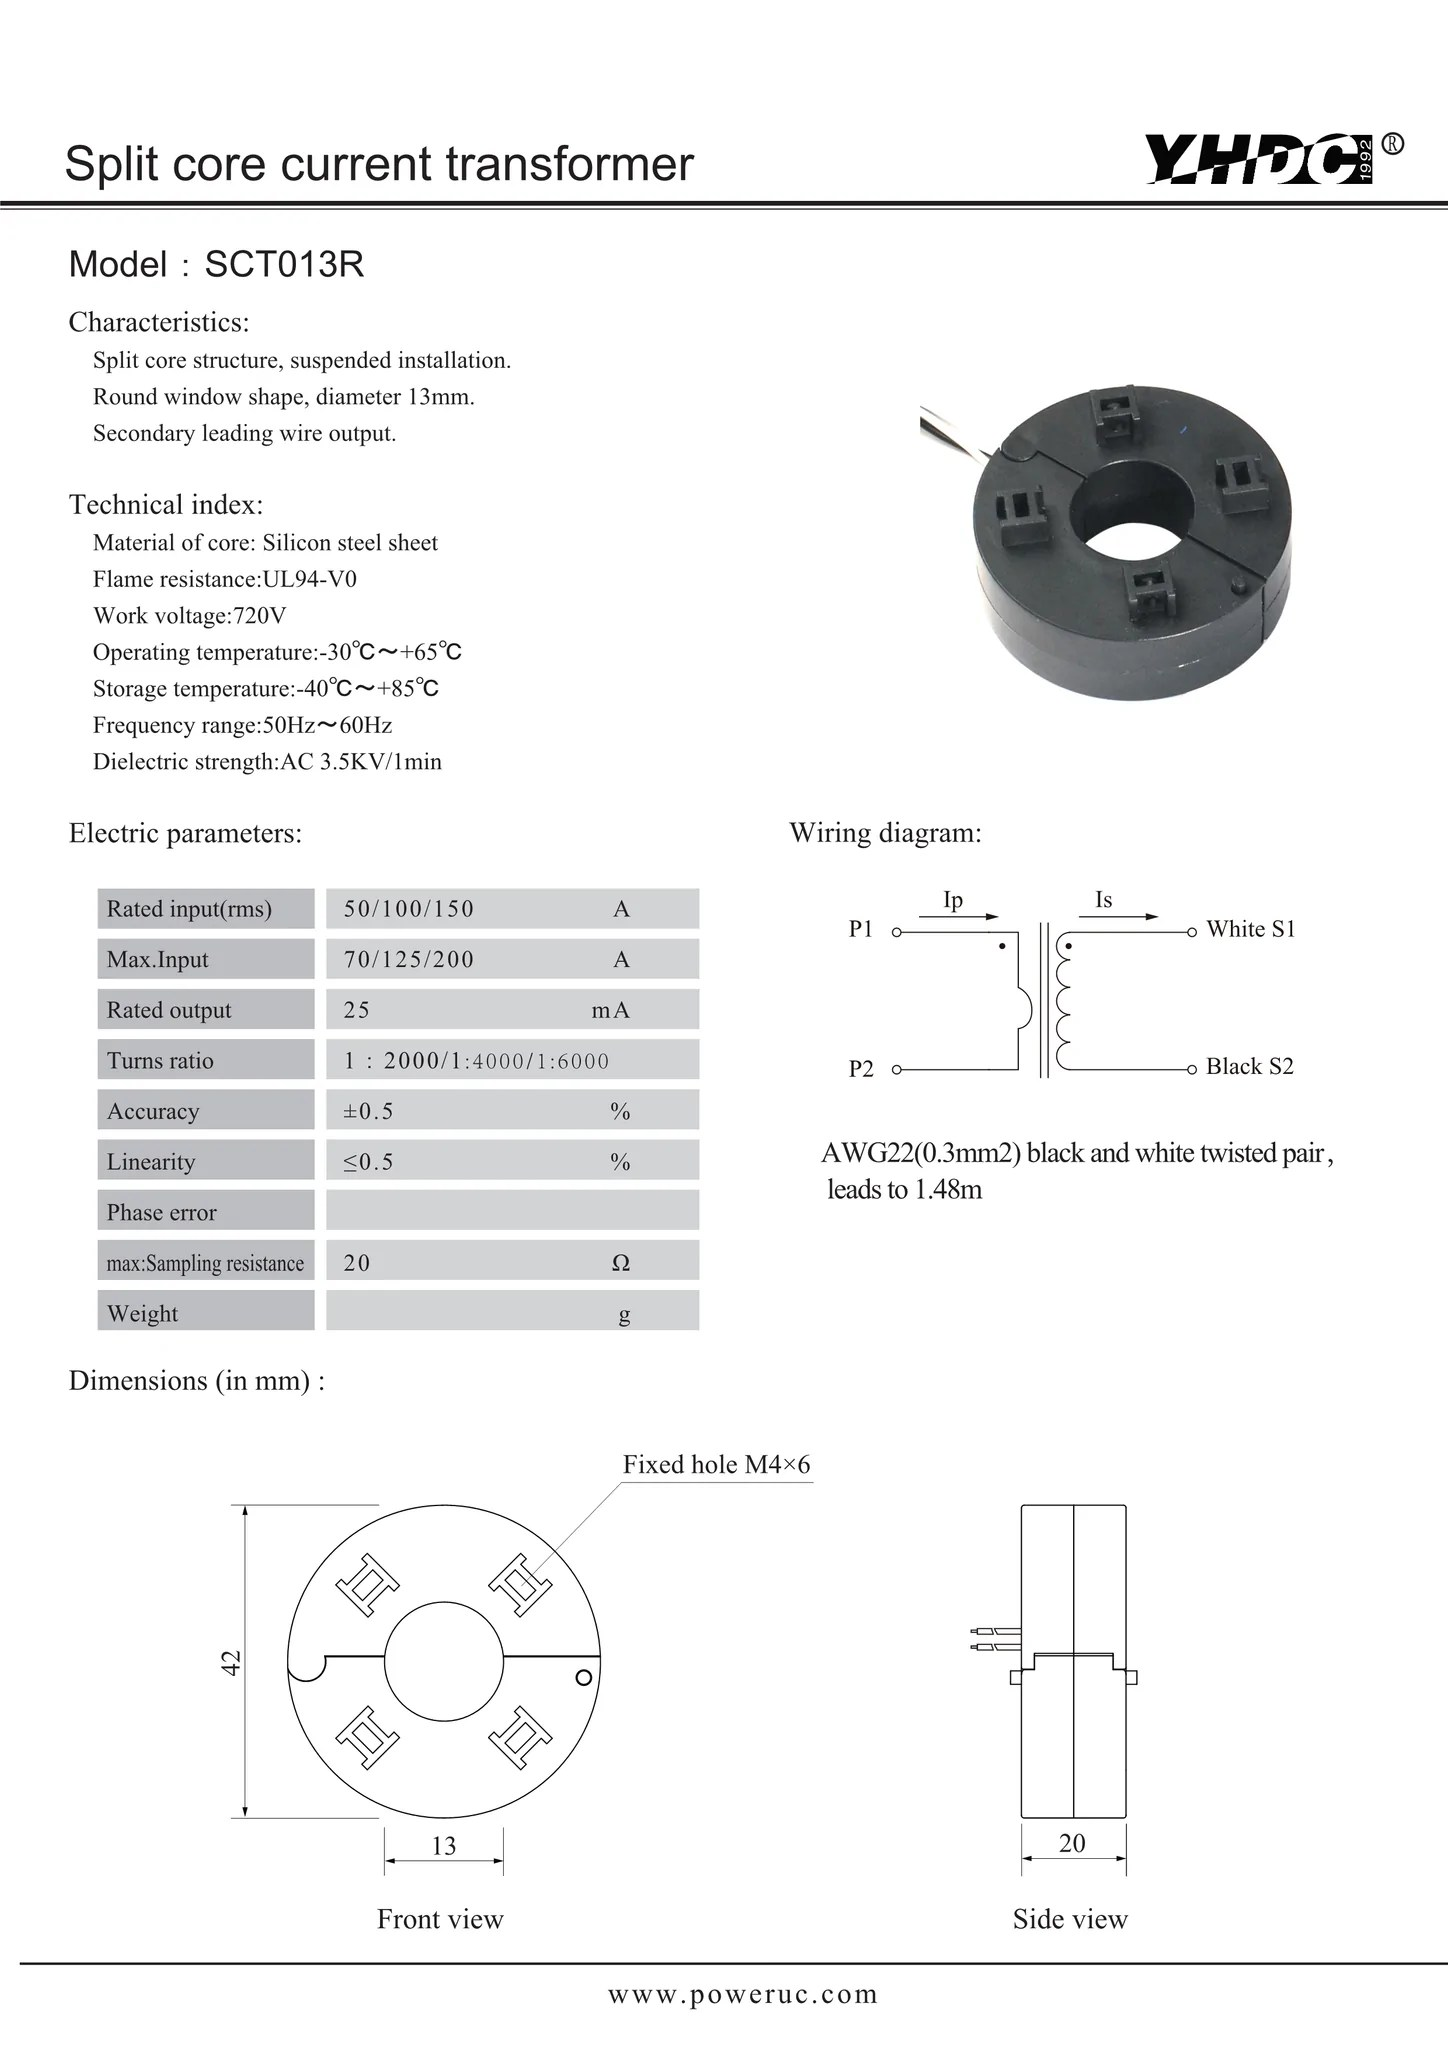 medium resolution of split core current transformer sct013r rated input 50a 100a 150a rated output 25ma